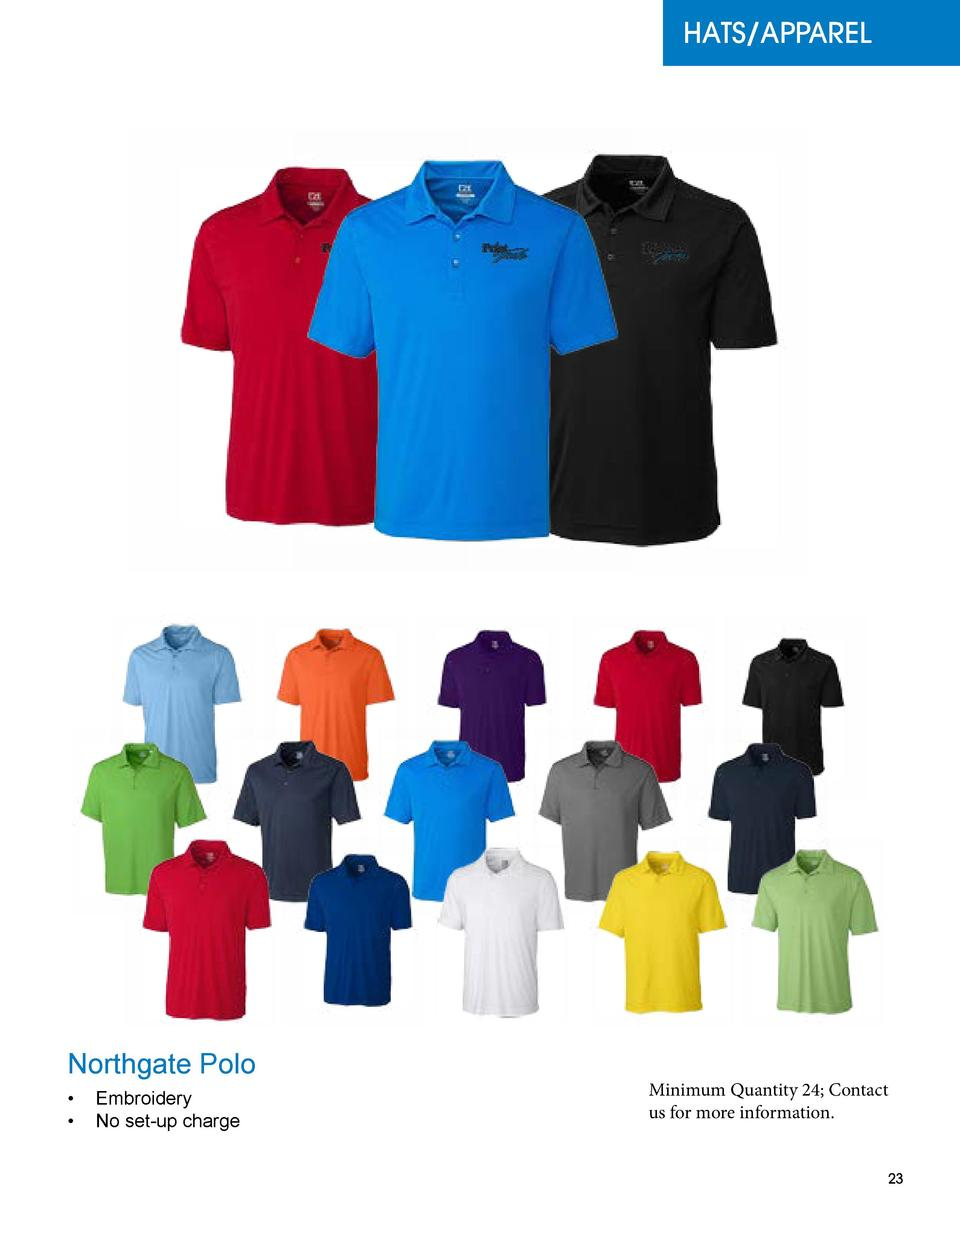 HATS APPAREL  Northgate Polo      Embroidery      No set-up charge  Minimum Quantity 24  Contact us for more information. ...